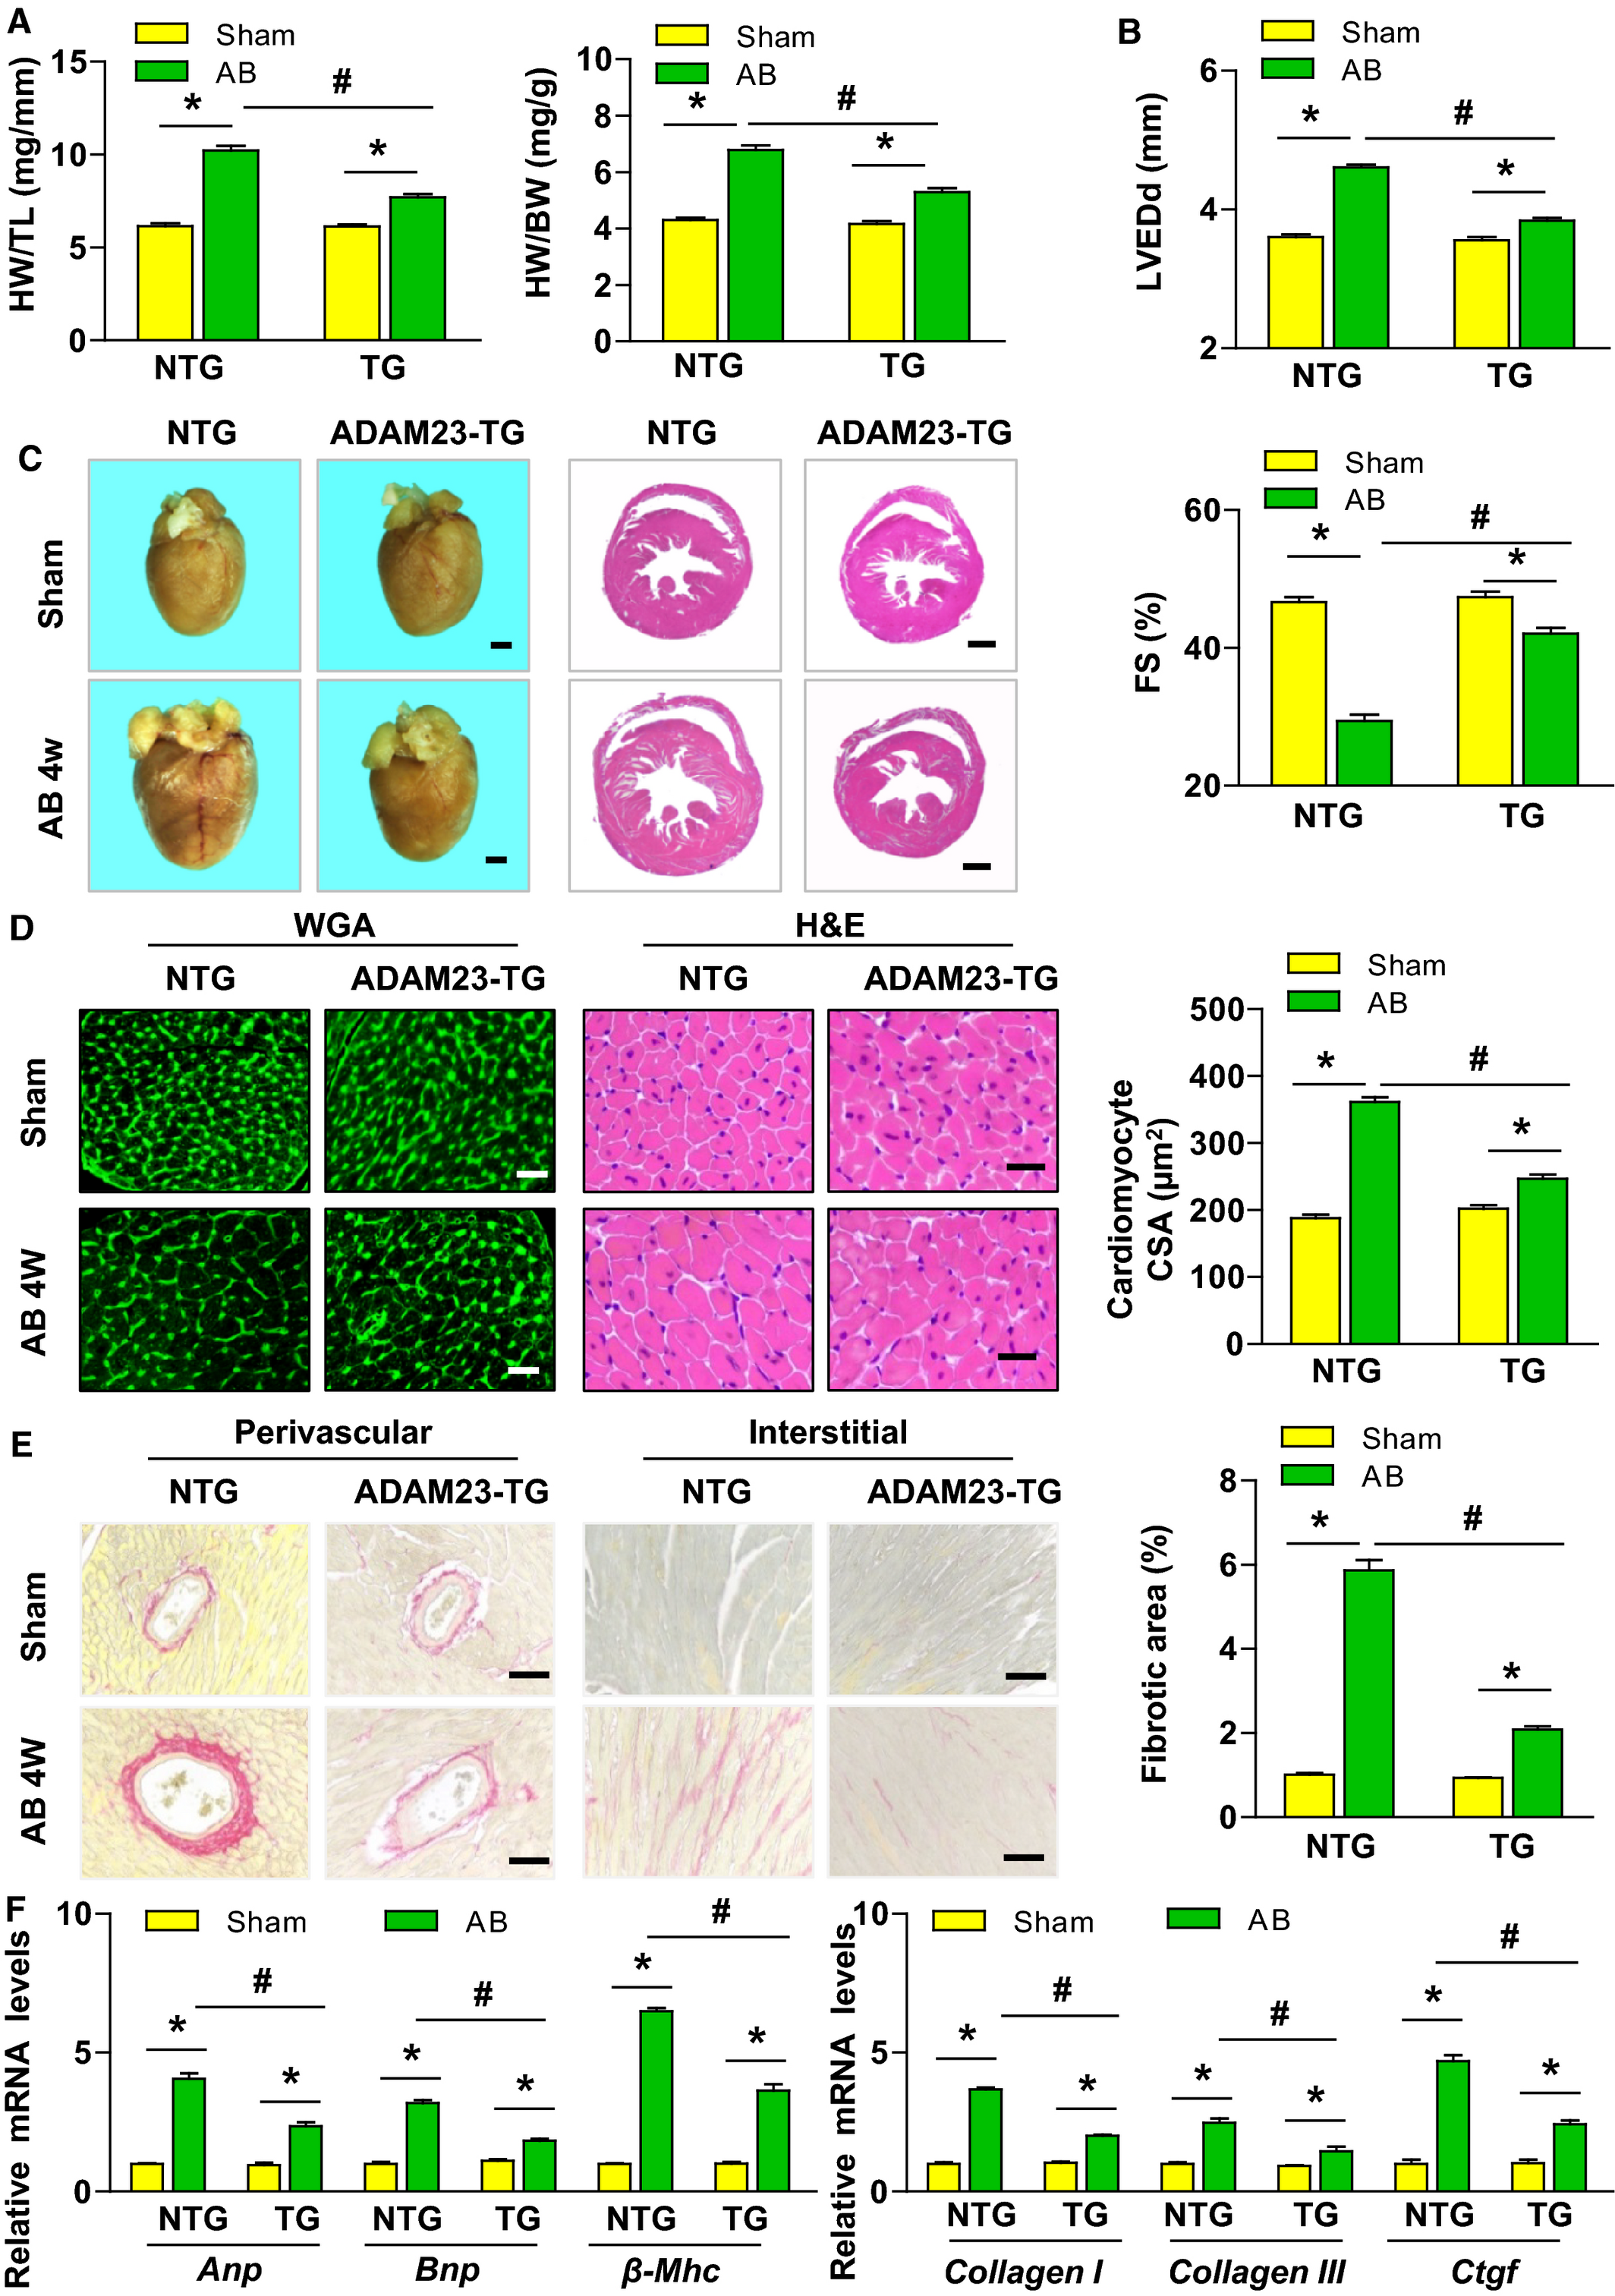 ADAM23 in Cardiomyocyte Inhibits Cardiac Hypertrophy by